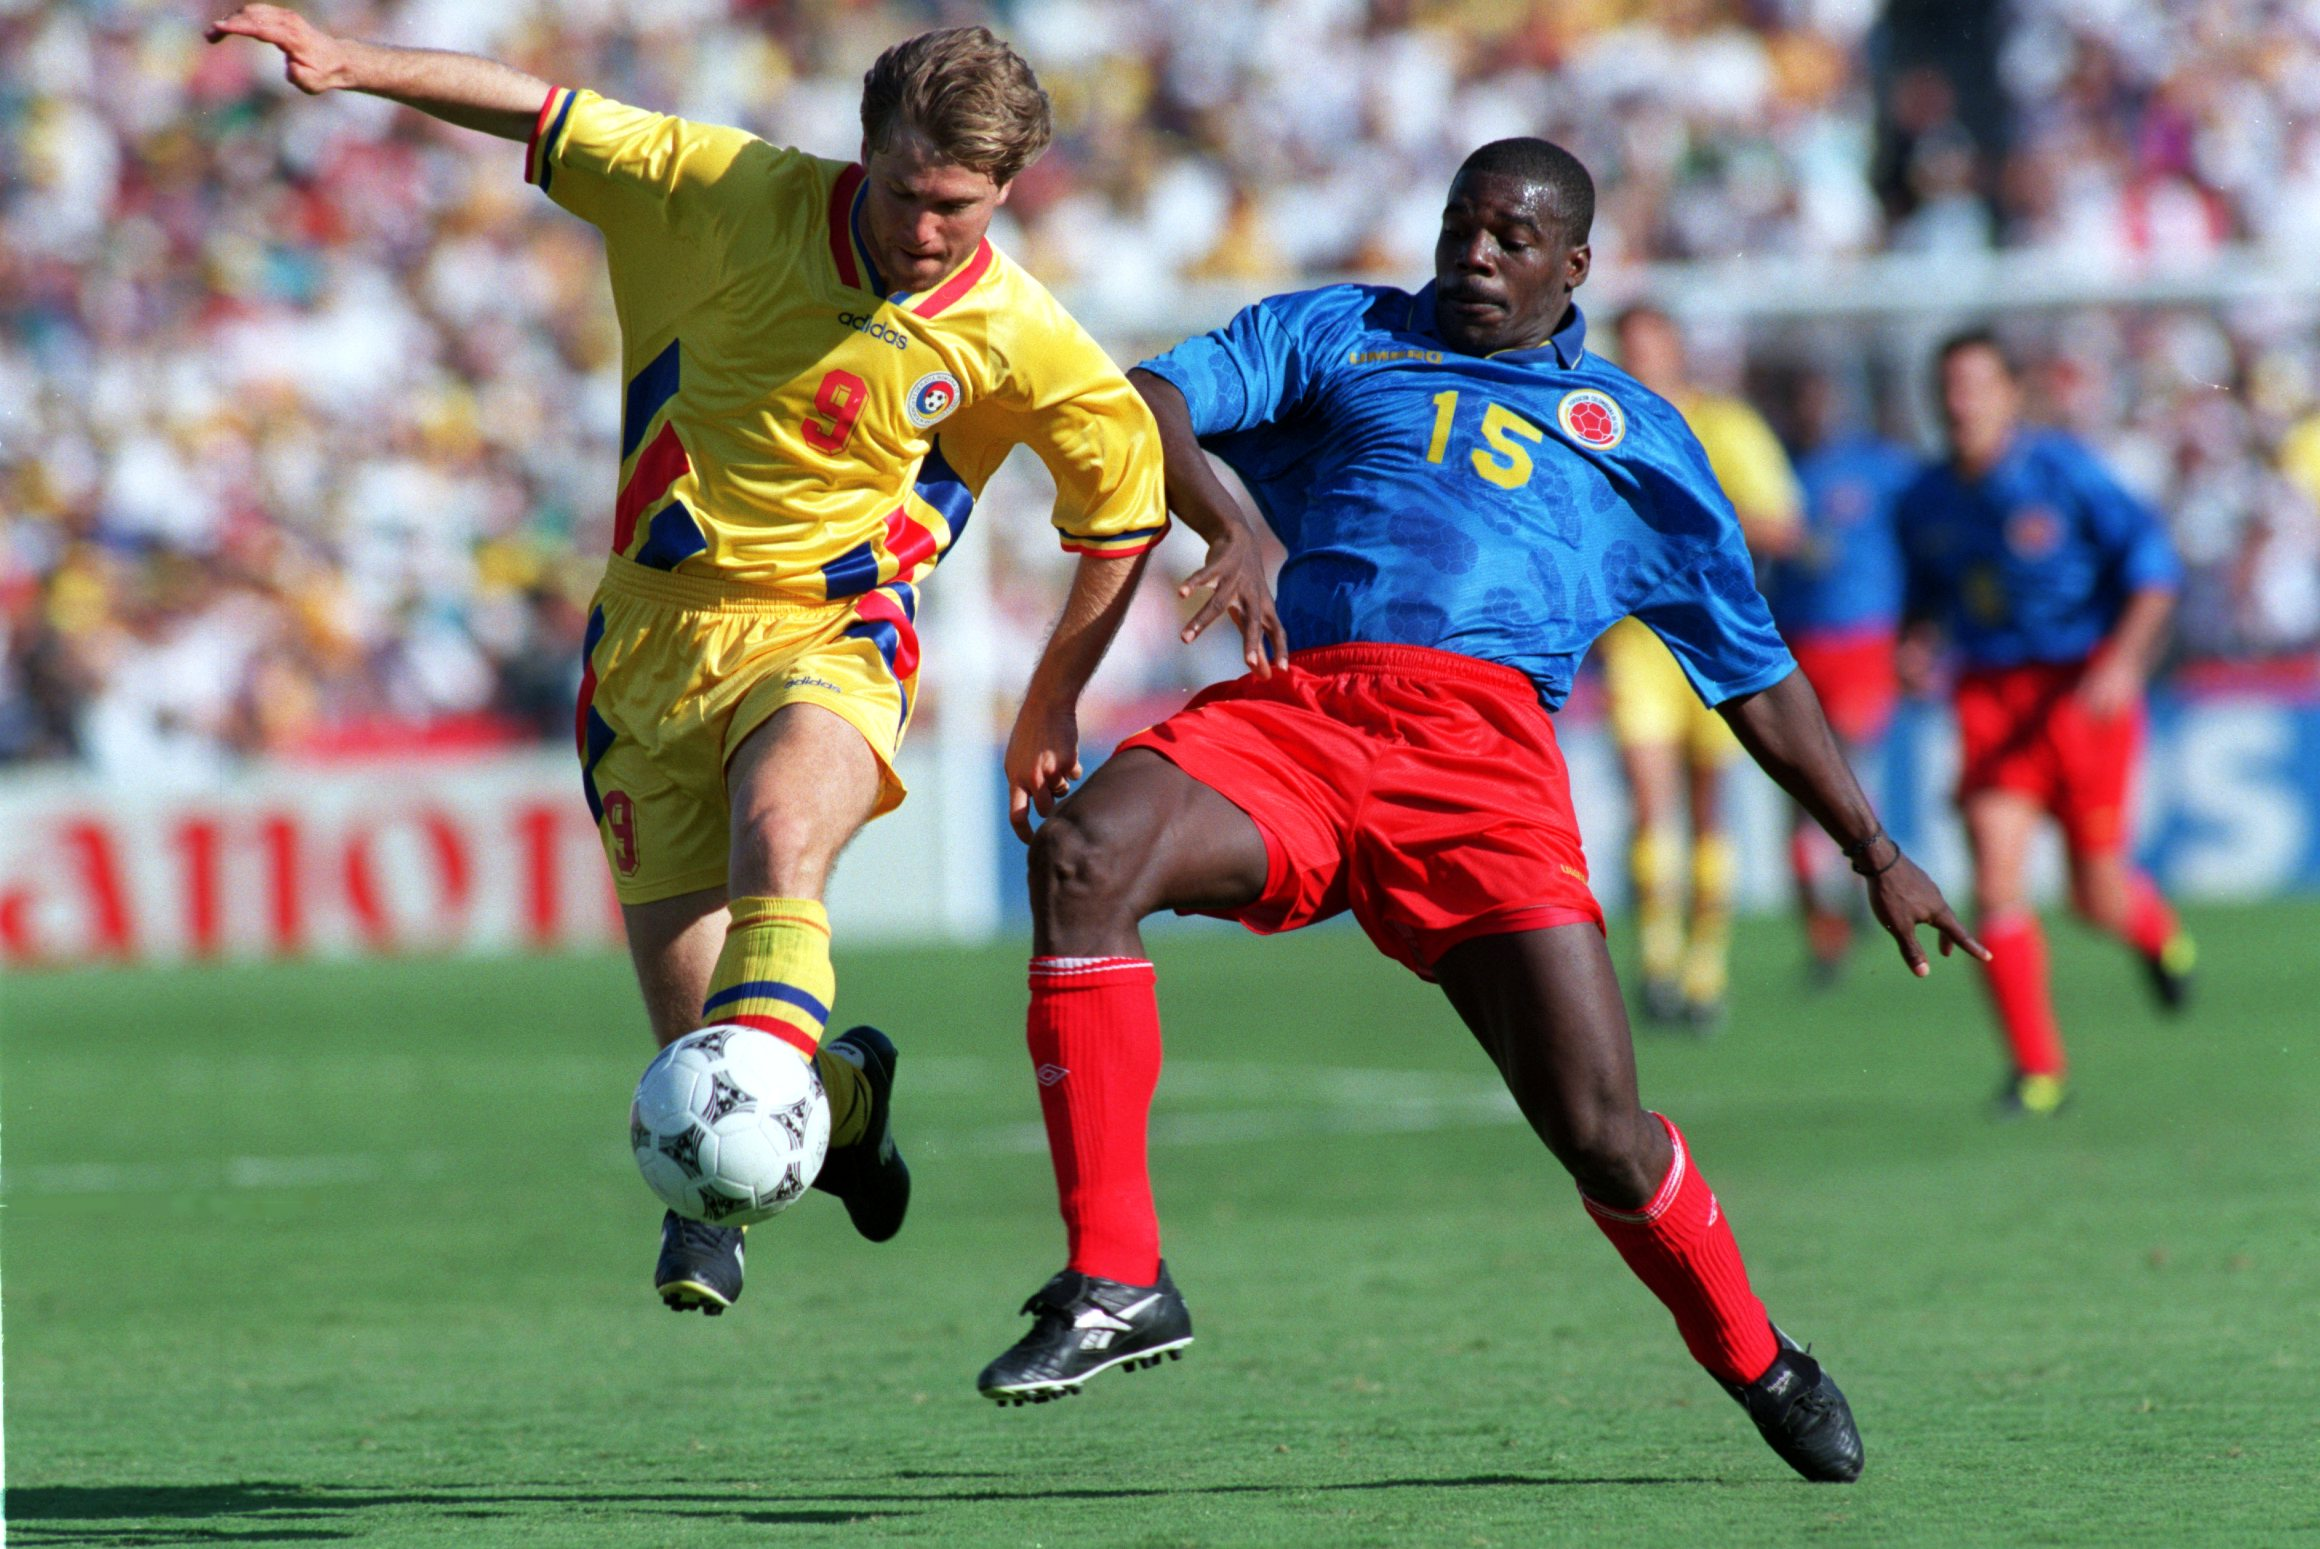 18 JUN 1994: FLORIN VALERIU RADUCIOIU OF ROMANIA, LEFT, AND LUIS CARLOS PEREA OF COLOMBIA IN ACTION DURING THE COLOMBIA V ROMANIA MATCH AT THE ROSE BOWL IN LOS ANGELES, CALIFORNIA. Mandatory Credit: Shaun Botterill/ALLSPORT